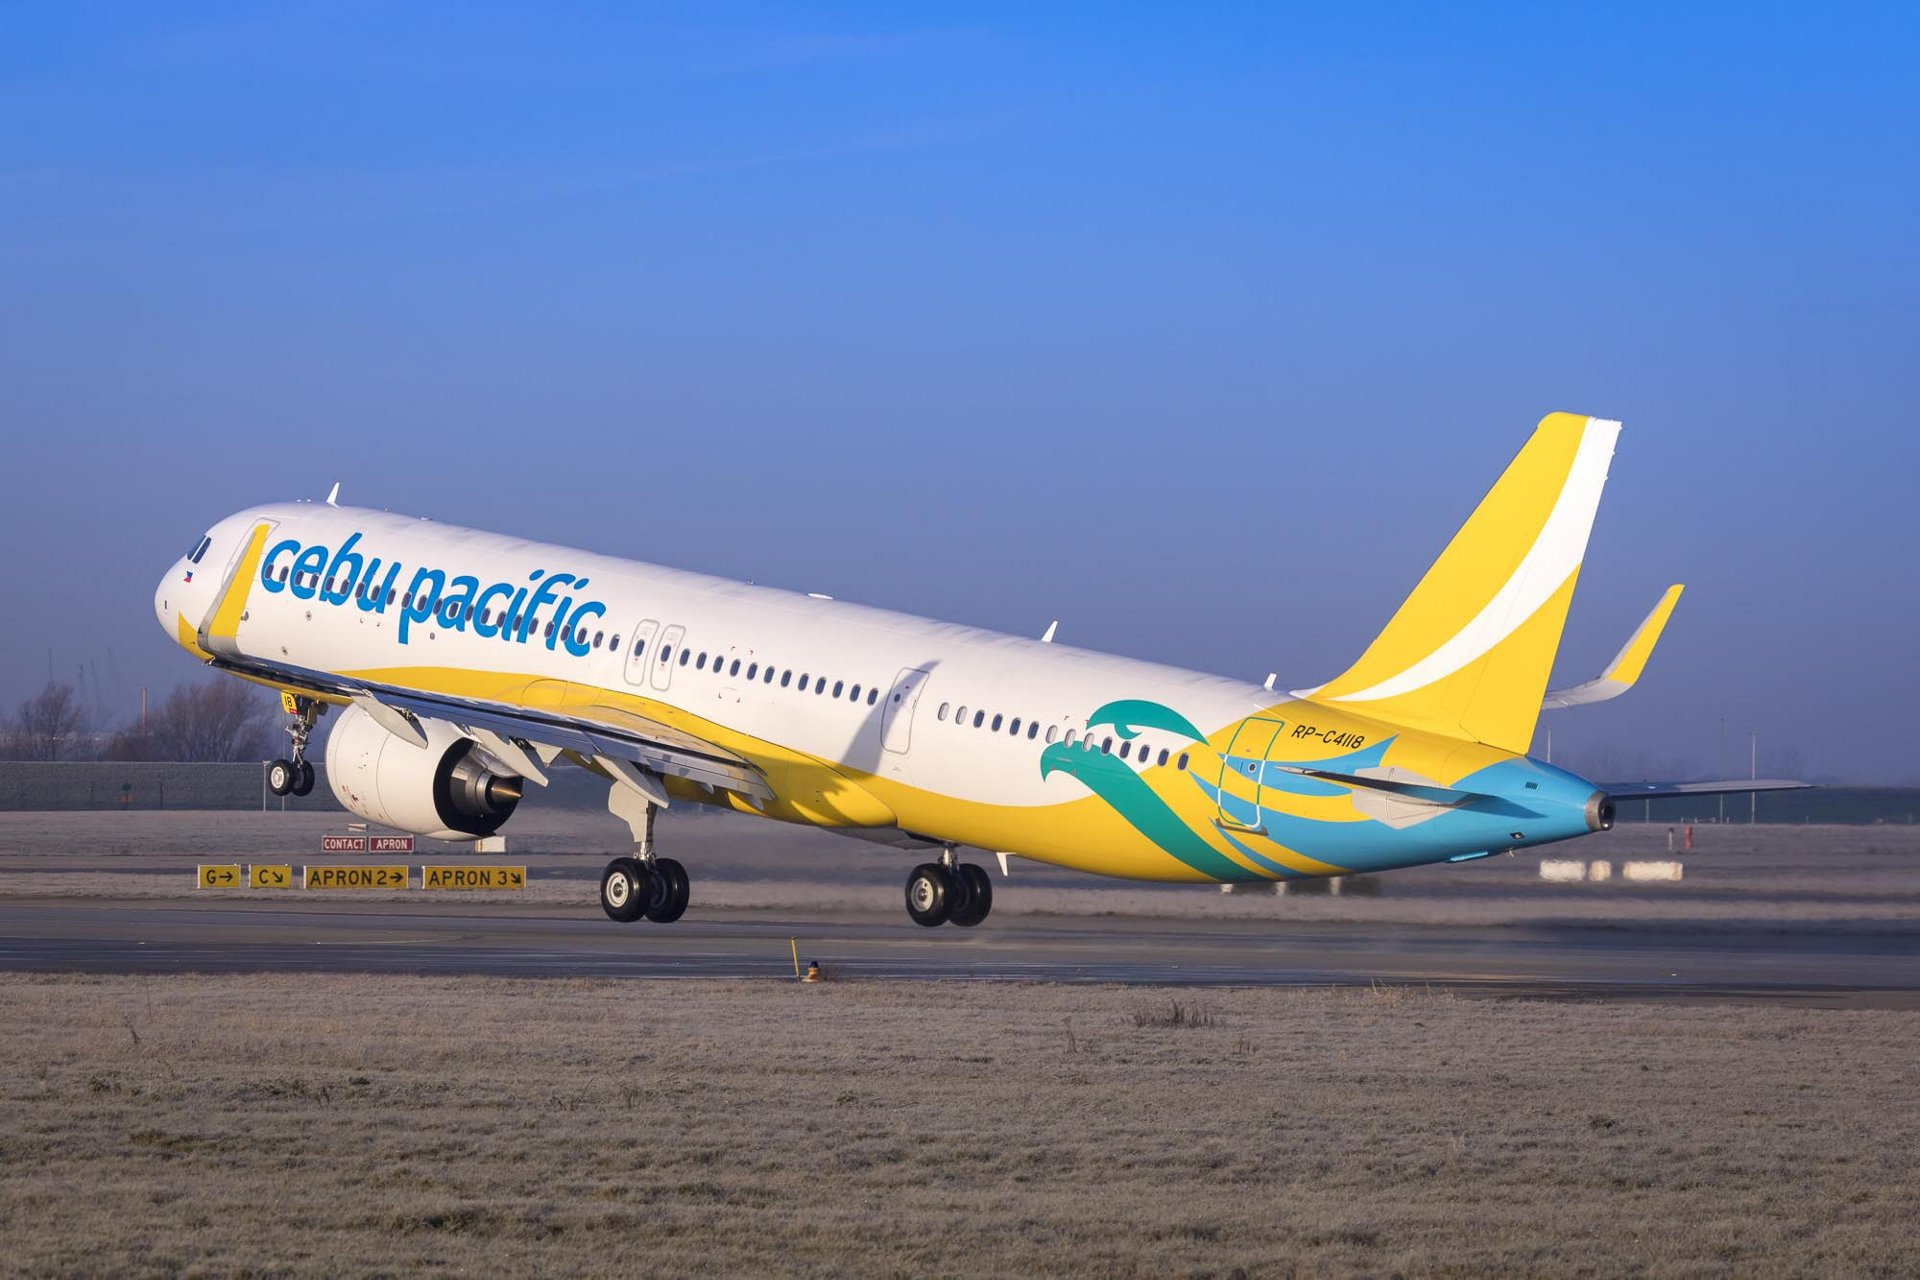 The first of 32 A321neo jetliners ordered by Cebu Pacific was delivered to the Philippines' largest low-cost carrier in January 2019